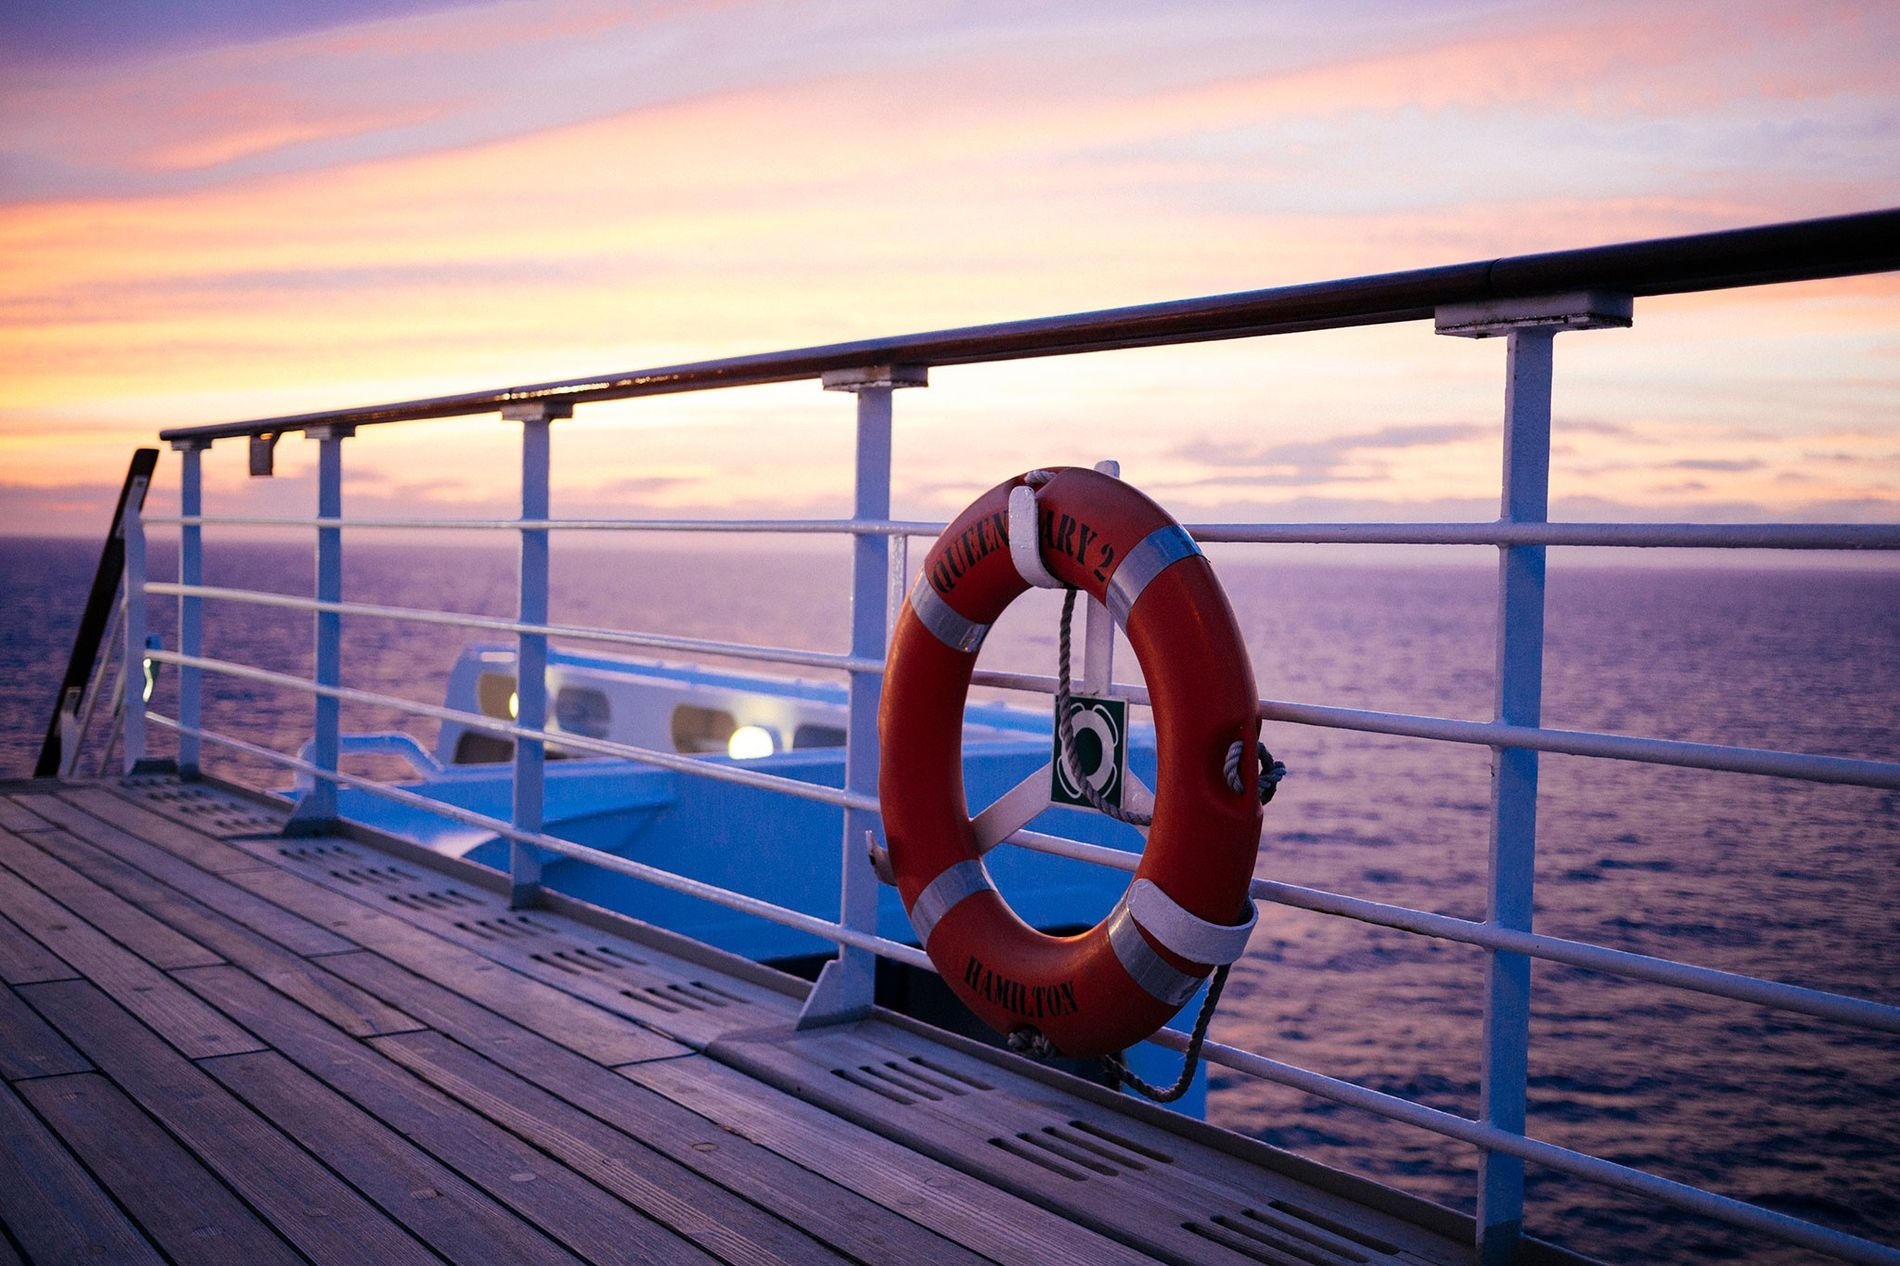 Cruise lines have regulations in place to prevent passengers from falling overboard.